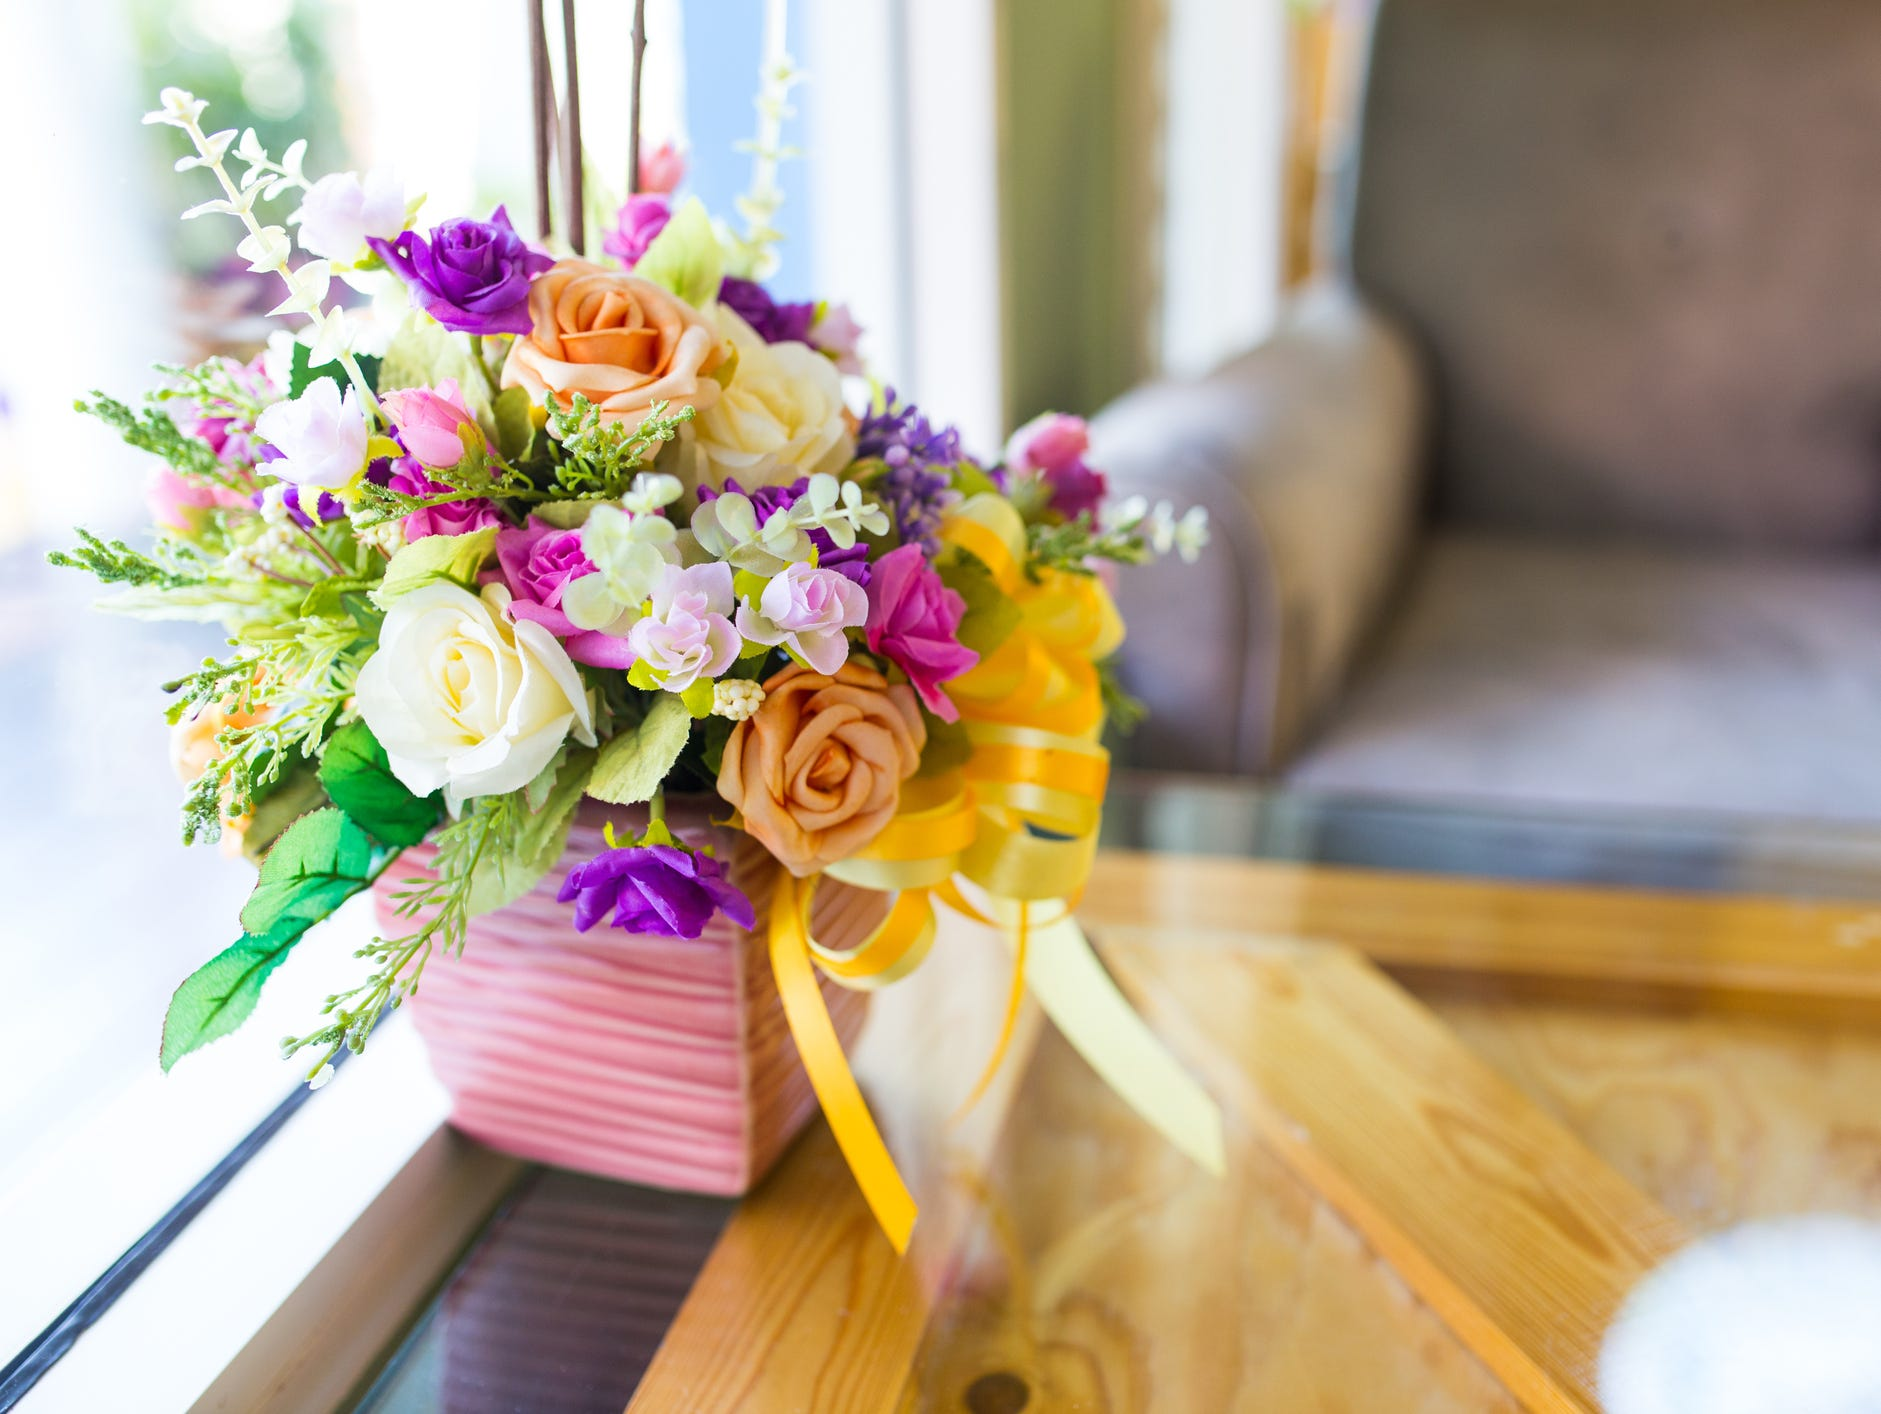 Order summer floral arrangements today! Insiders receive an exclusive 20% savings.